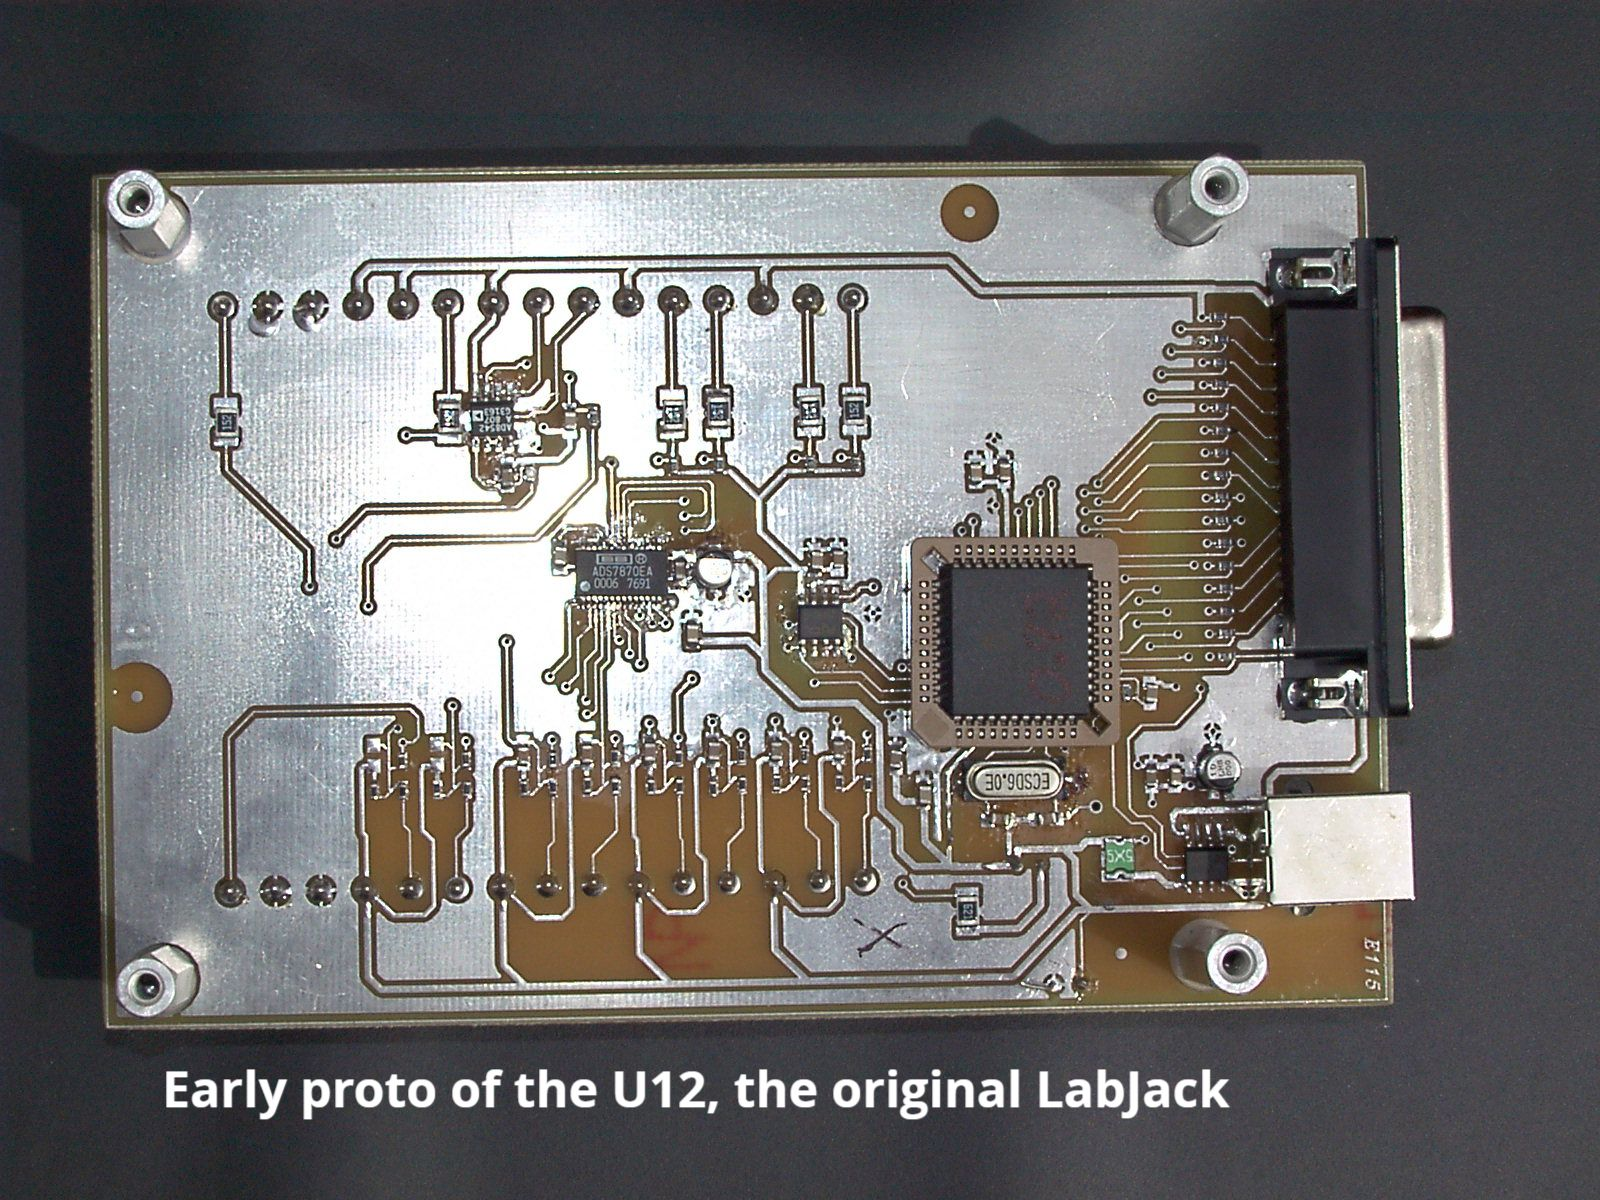 An early prototype of the U12, the original LabJack